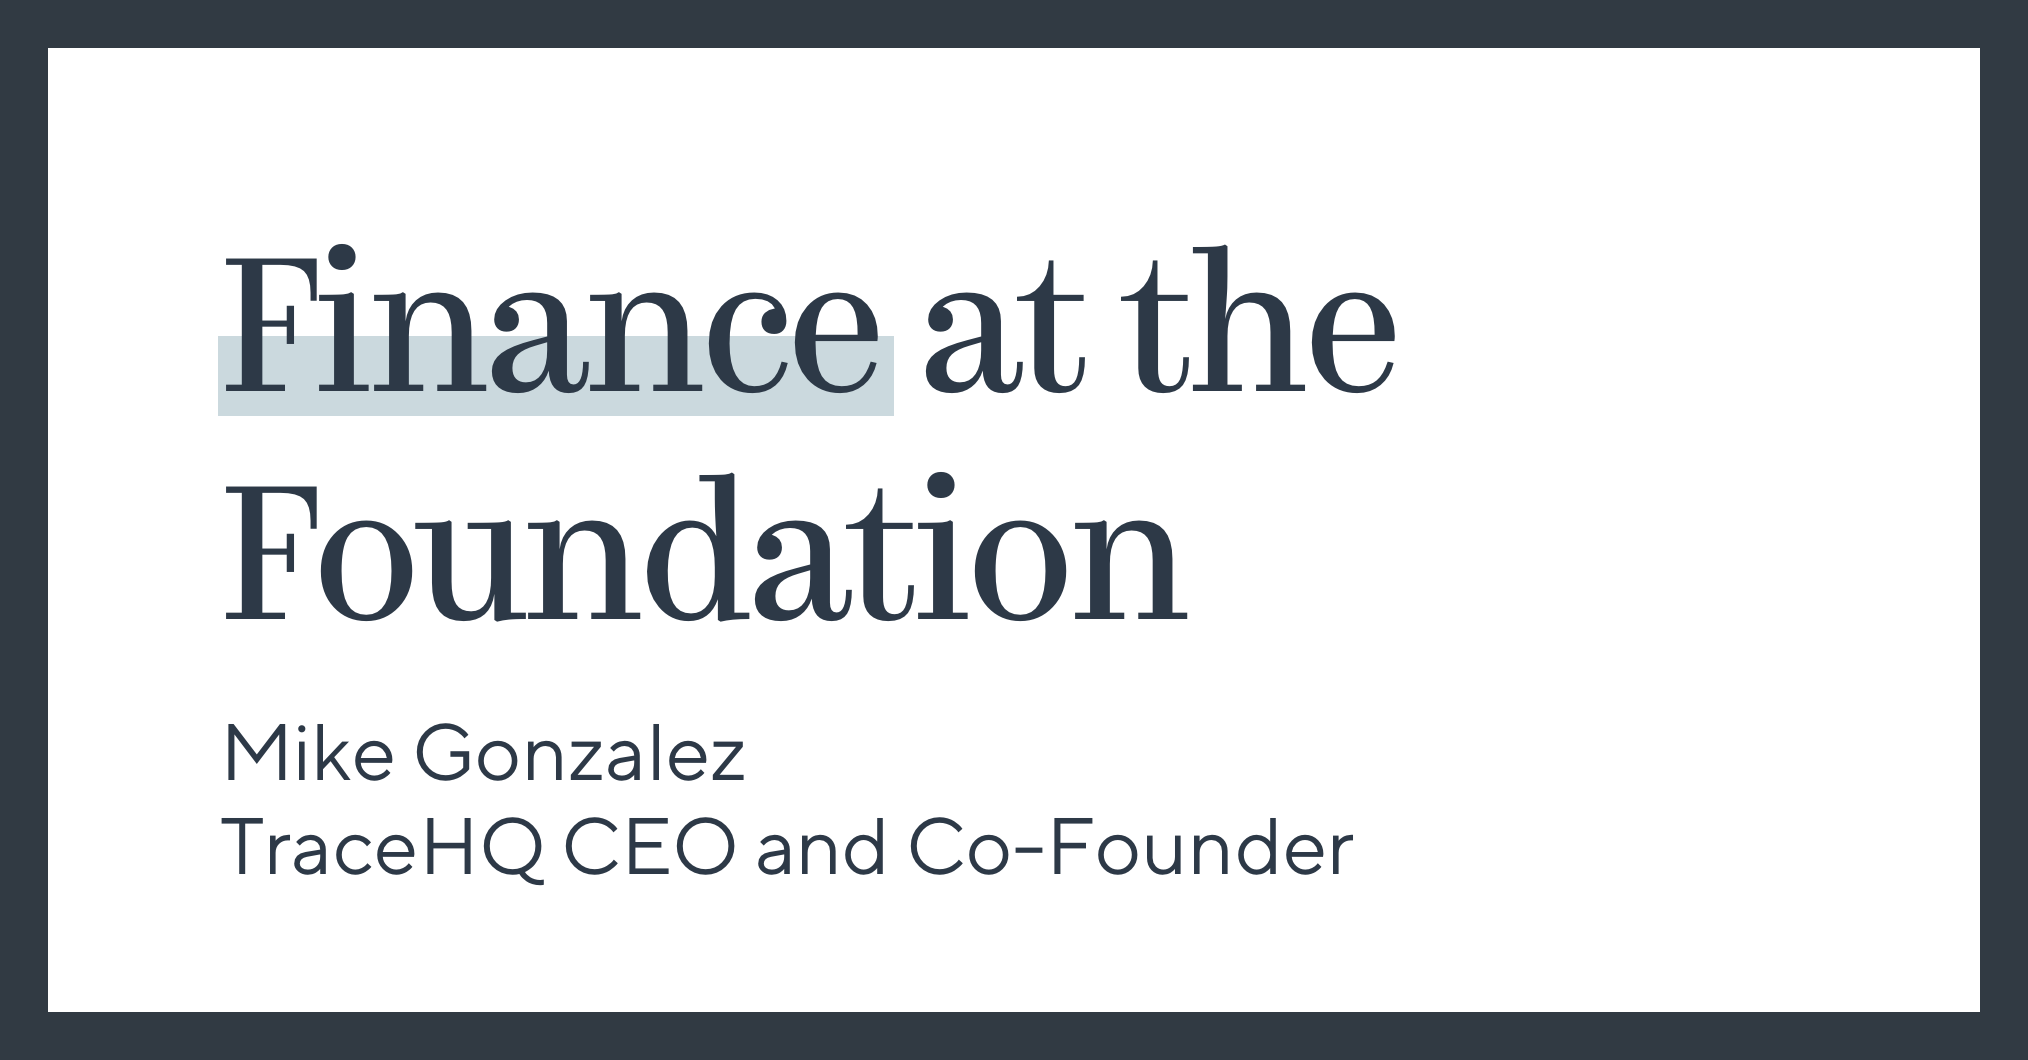 Finance at the Foundation